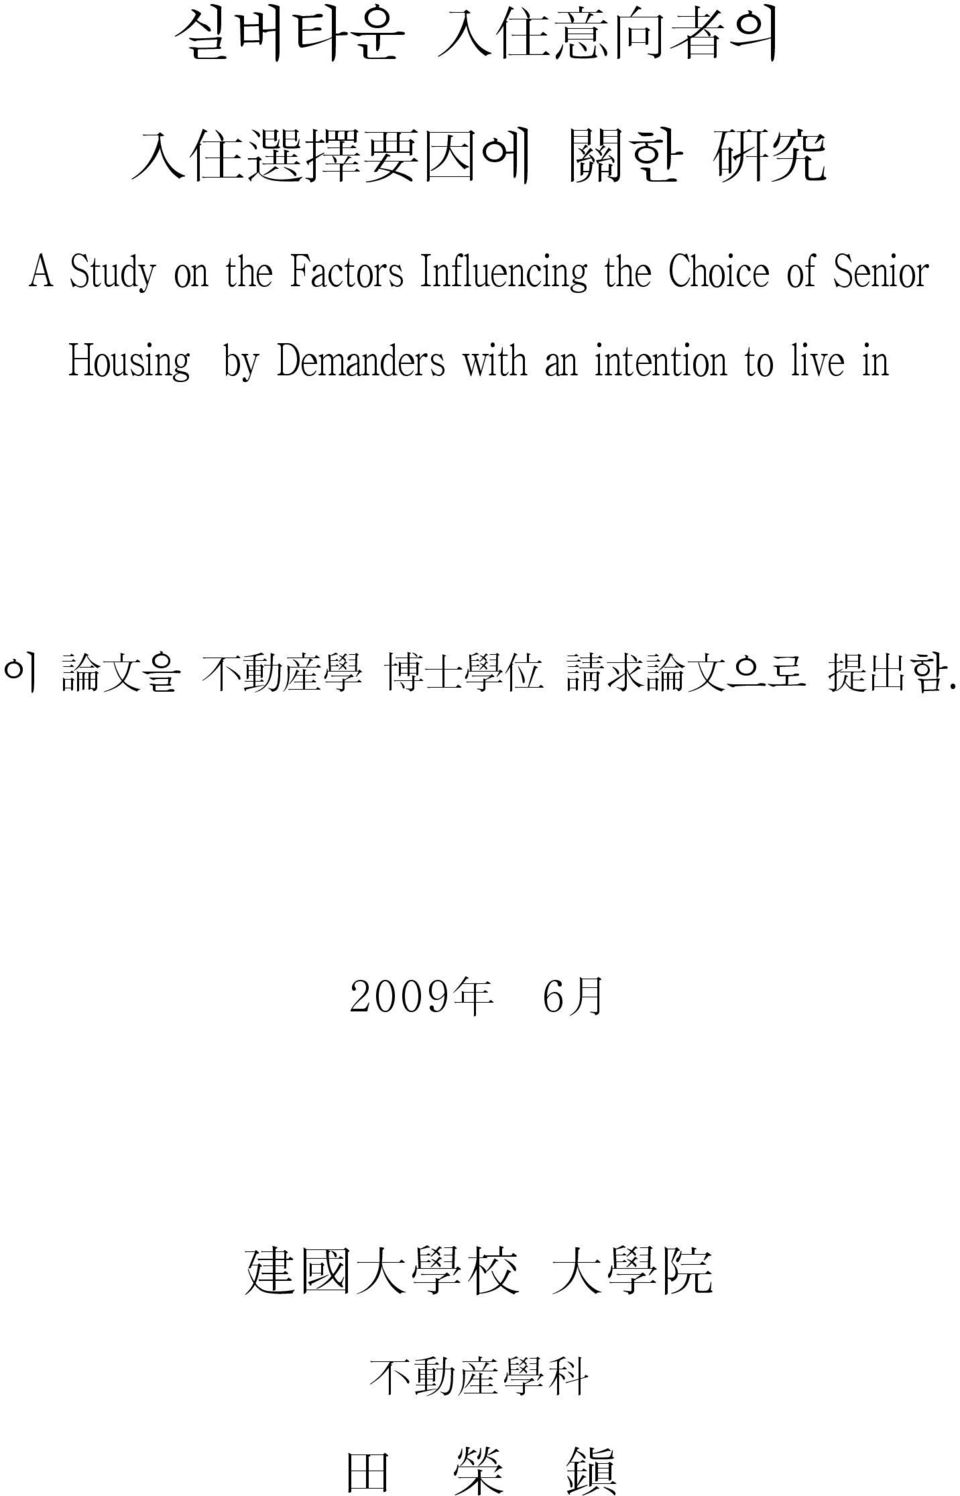 Demanders with an intention to live in 이 論 文 을 不 動 産 學 博